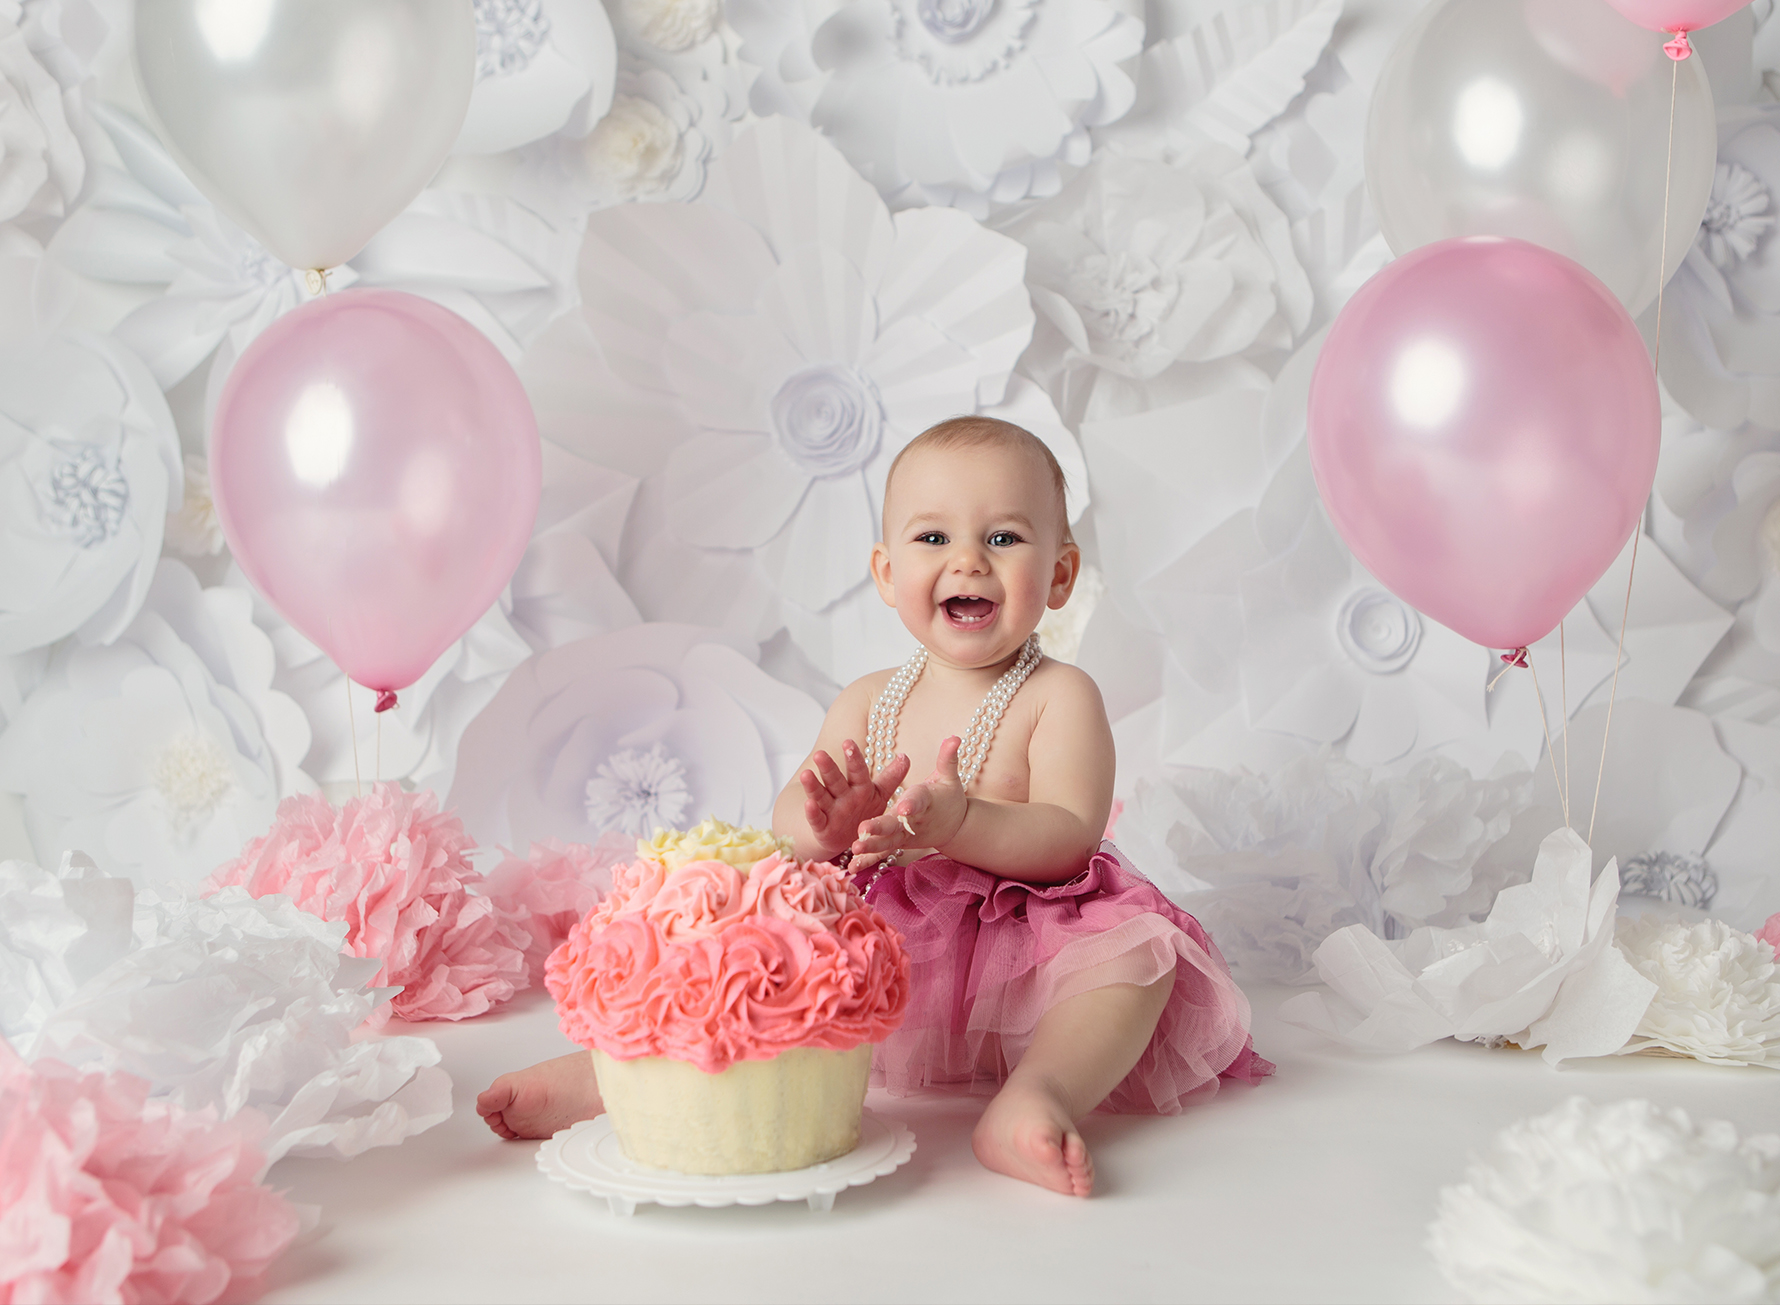 HD wallpapers first birthday cake ideas for baby girl